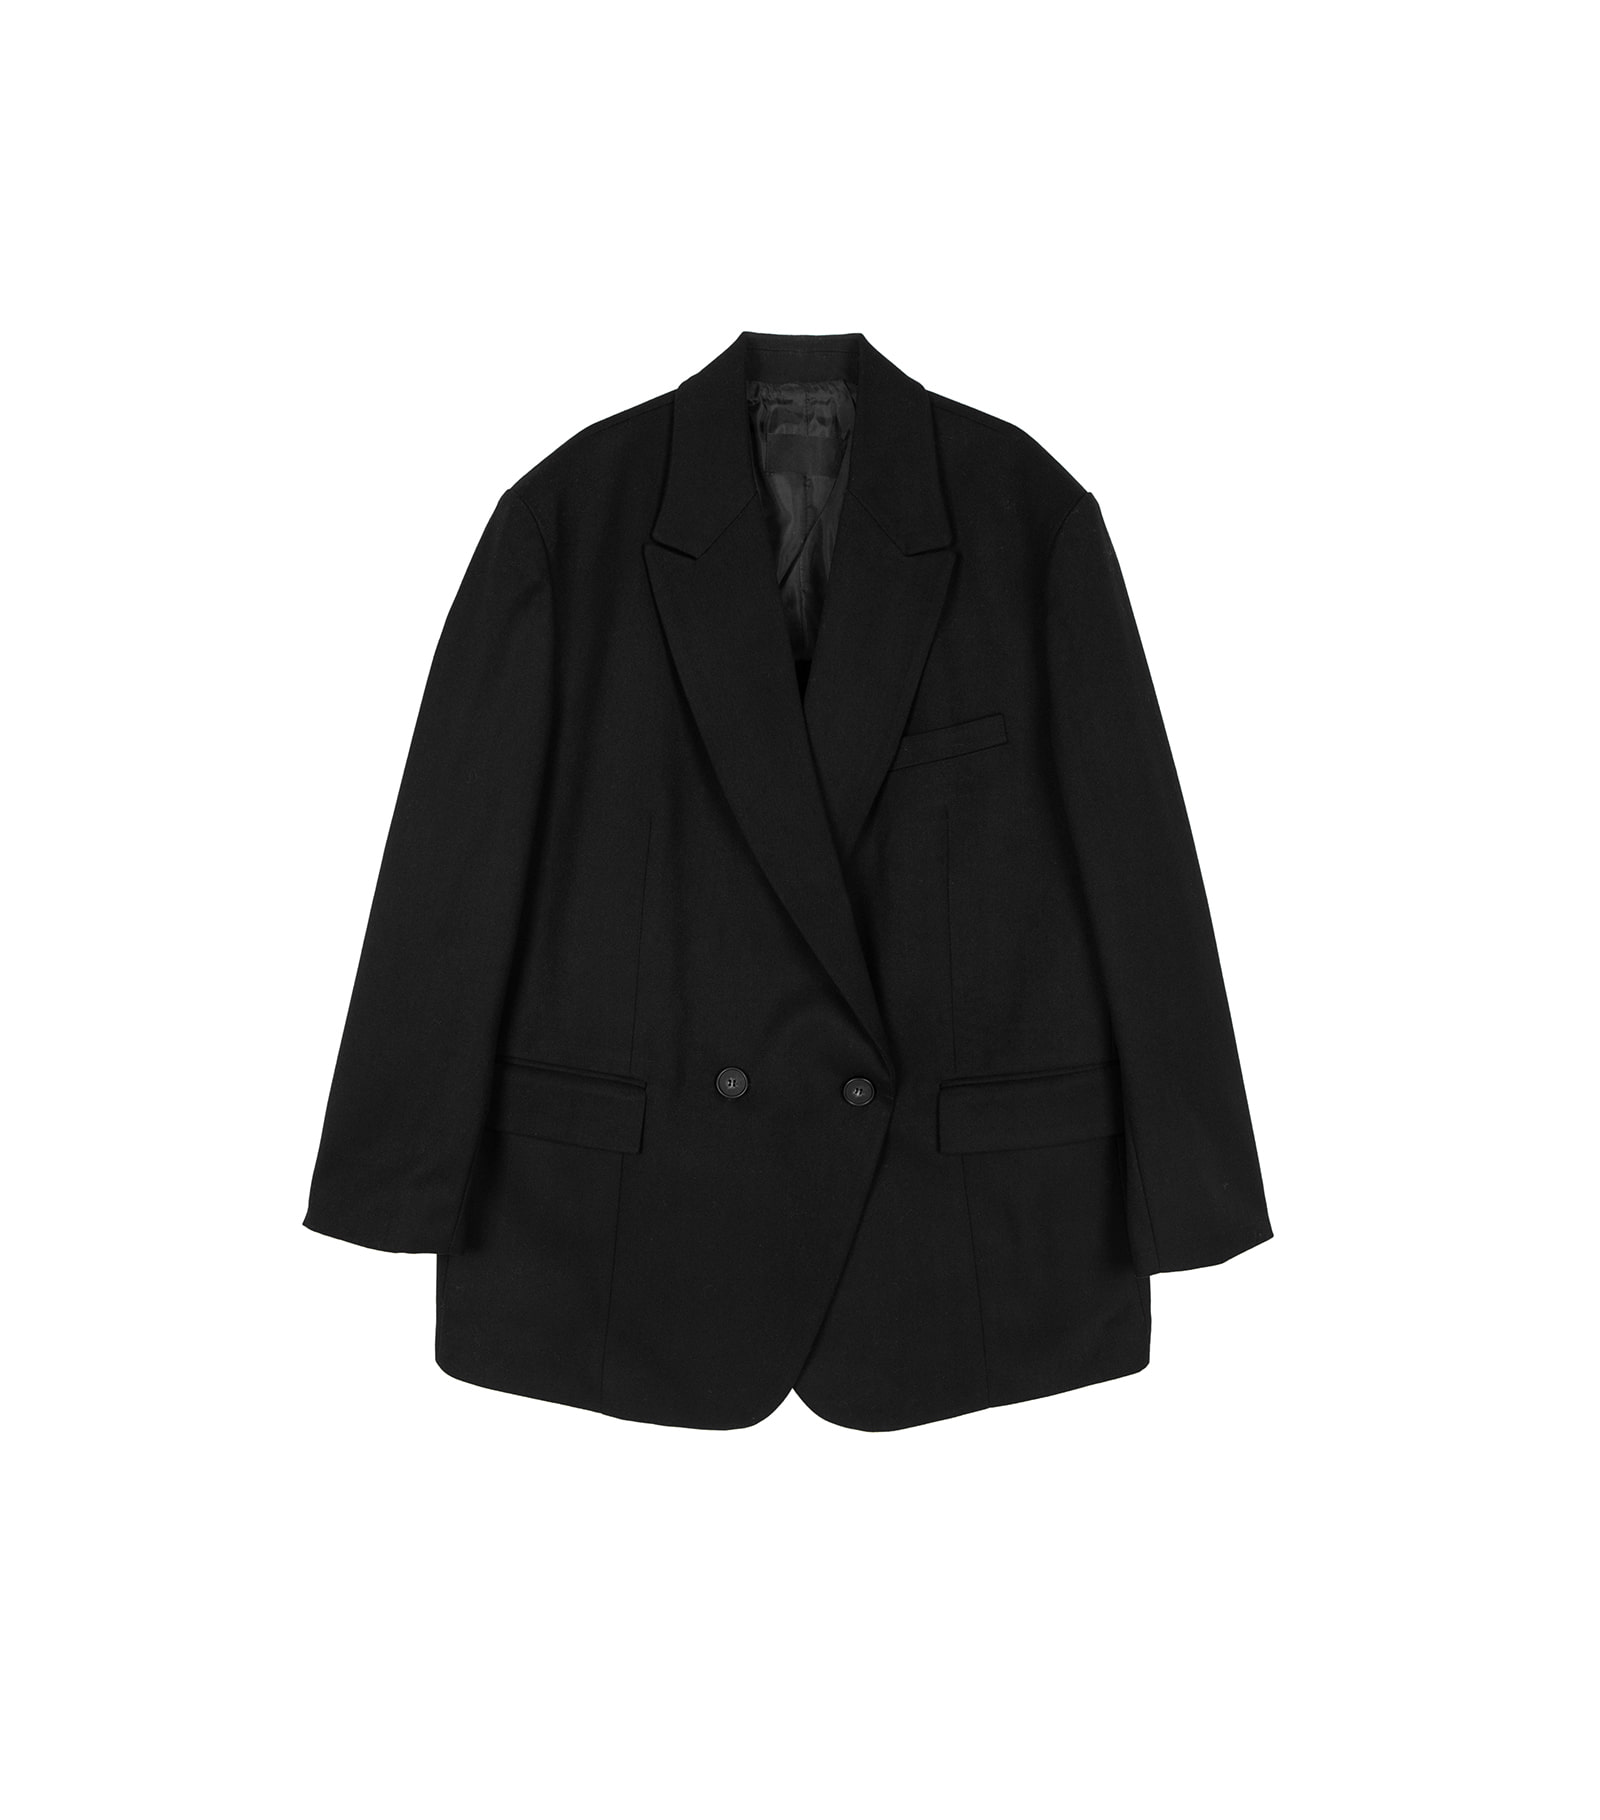 Berlin winter overfit blazer